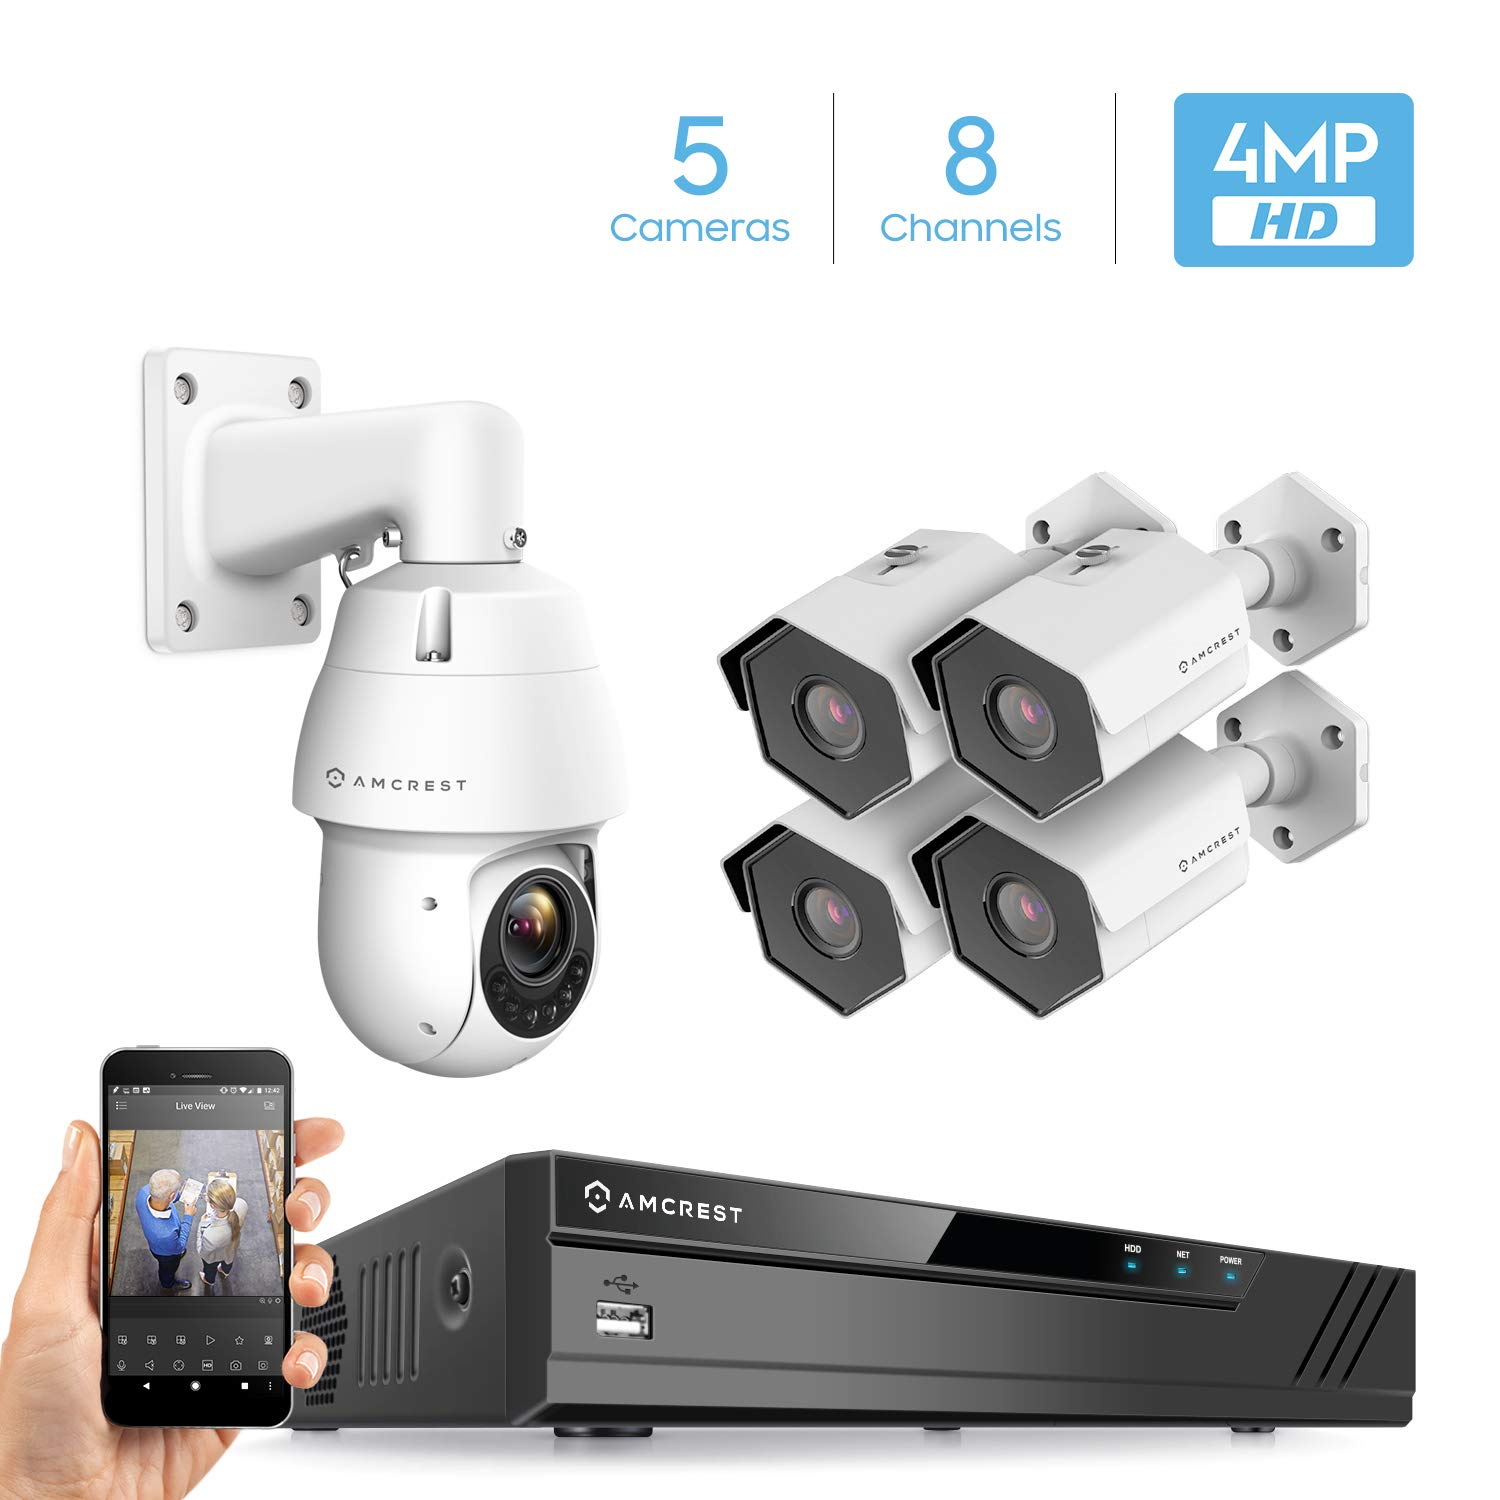 Amcrest 4MP Security Camera System, w/ 4K 8CH PoE NVR, (4) x 4MP IP67 Weatherproof Bullet POE IP Cameras, (1) X 4MP Speed Dome Camera, HDD Not Included, NV4108E-IP4M-1053EW1-IP4M-1026EW4 (White) by Amcrest